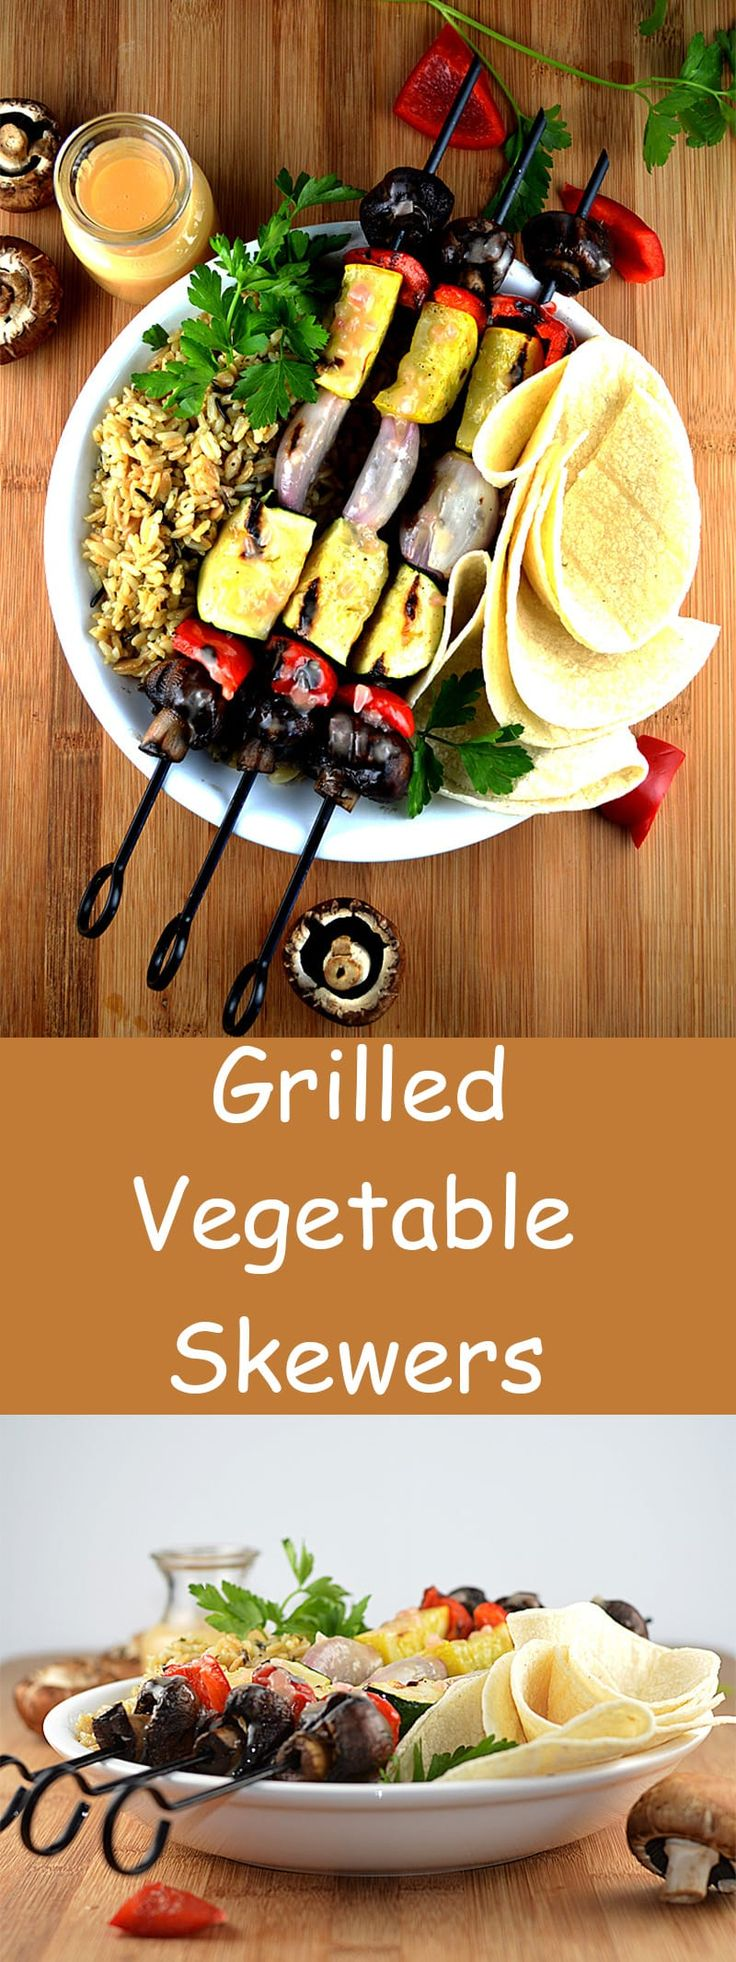 Grilled Vegetable Skewers with VEGAN Beurre Blanc Sauce by The Veg Life!